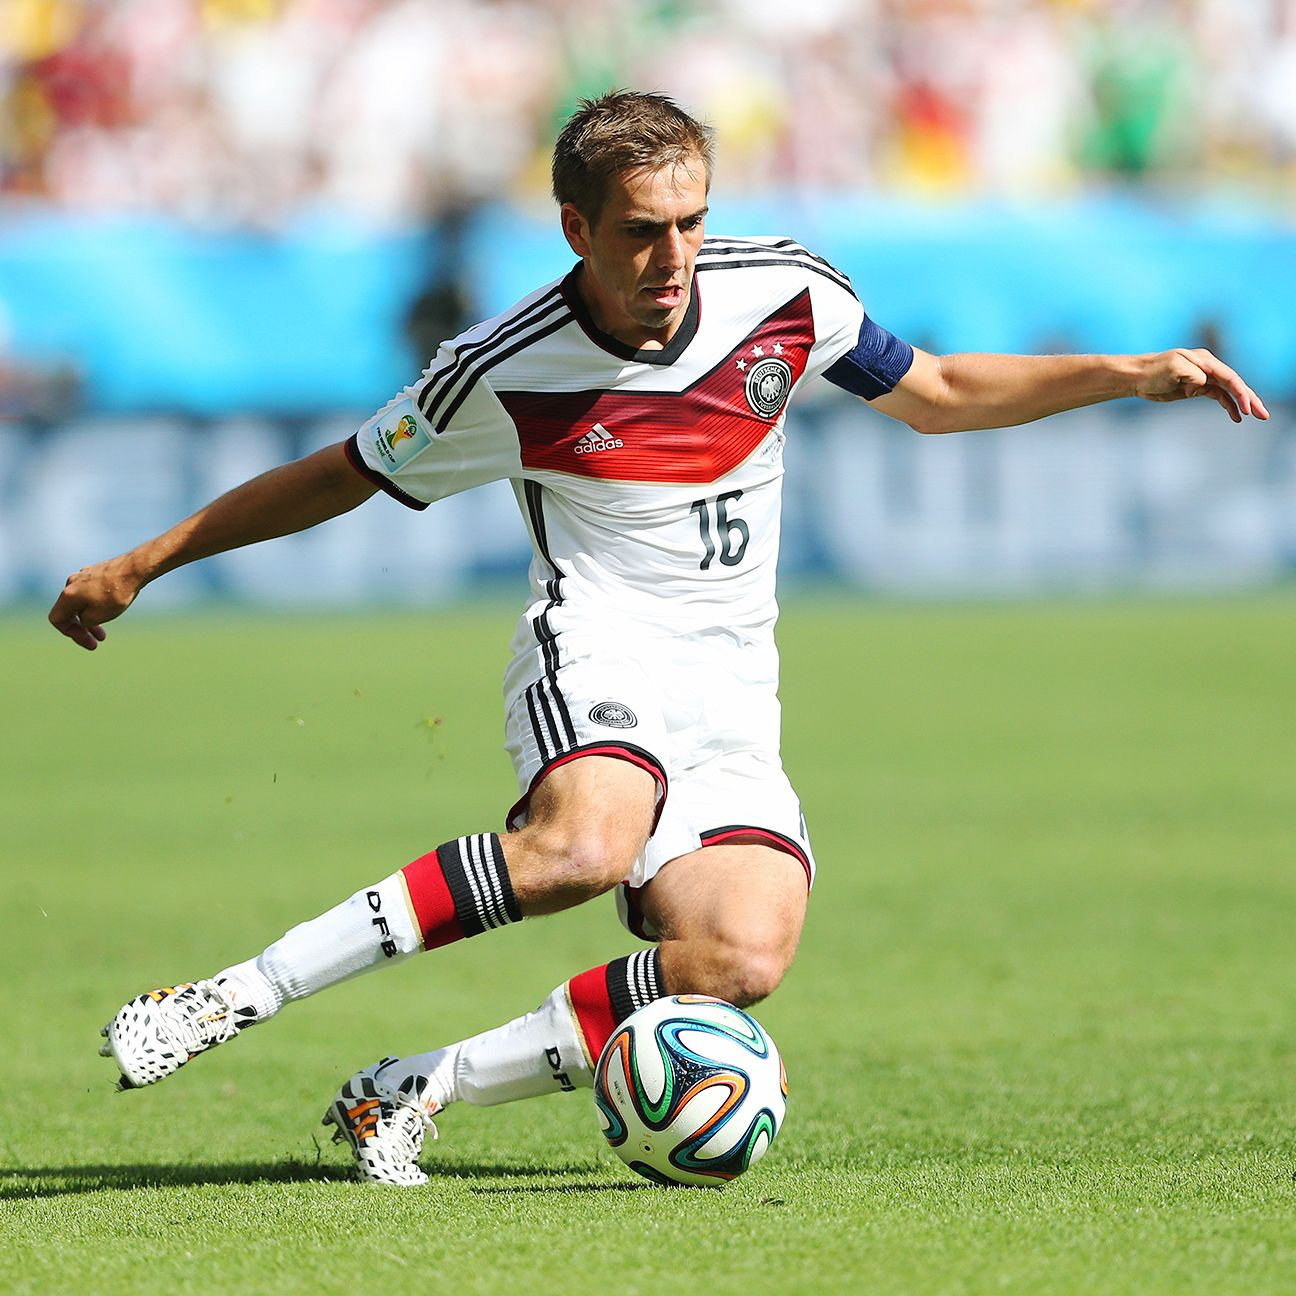 Philipp Lahm has played at both midfielder and fullback during the World Cup for Germany.